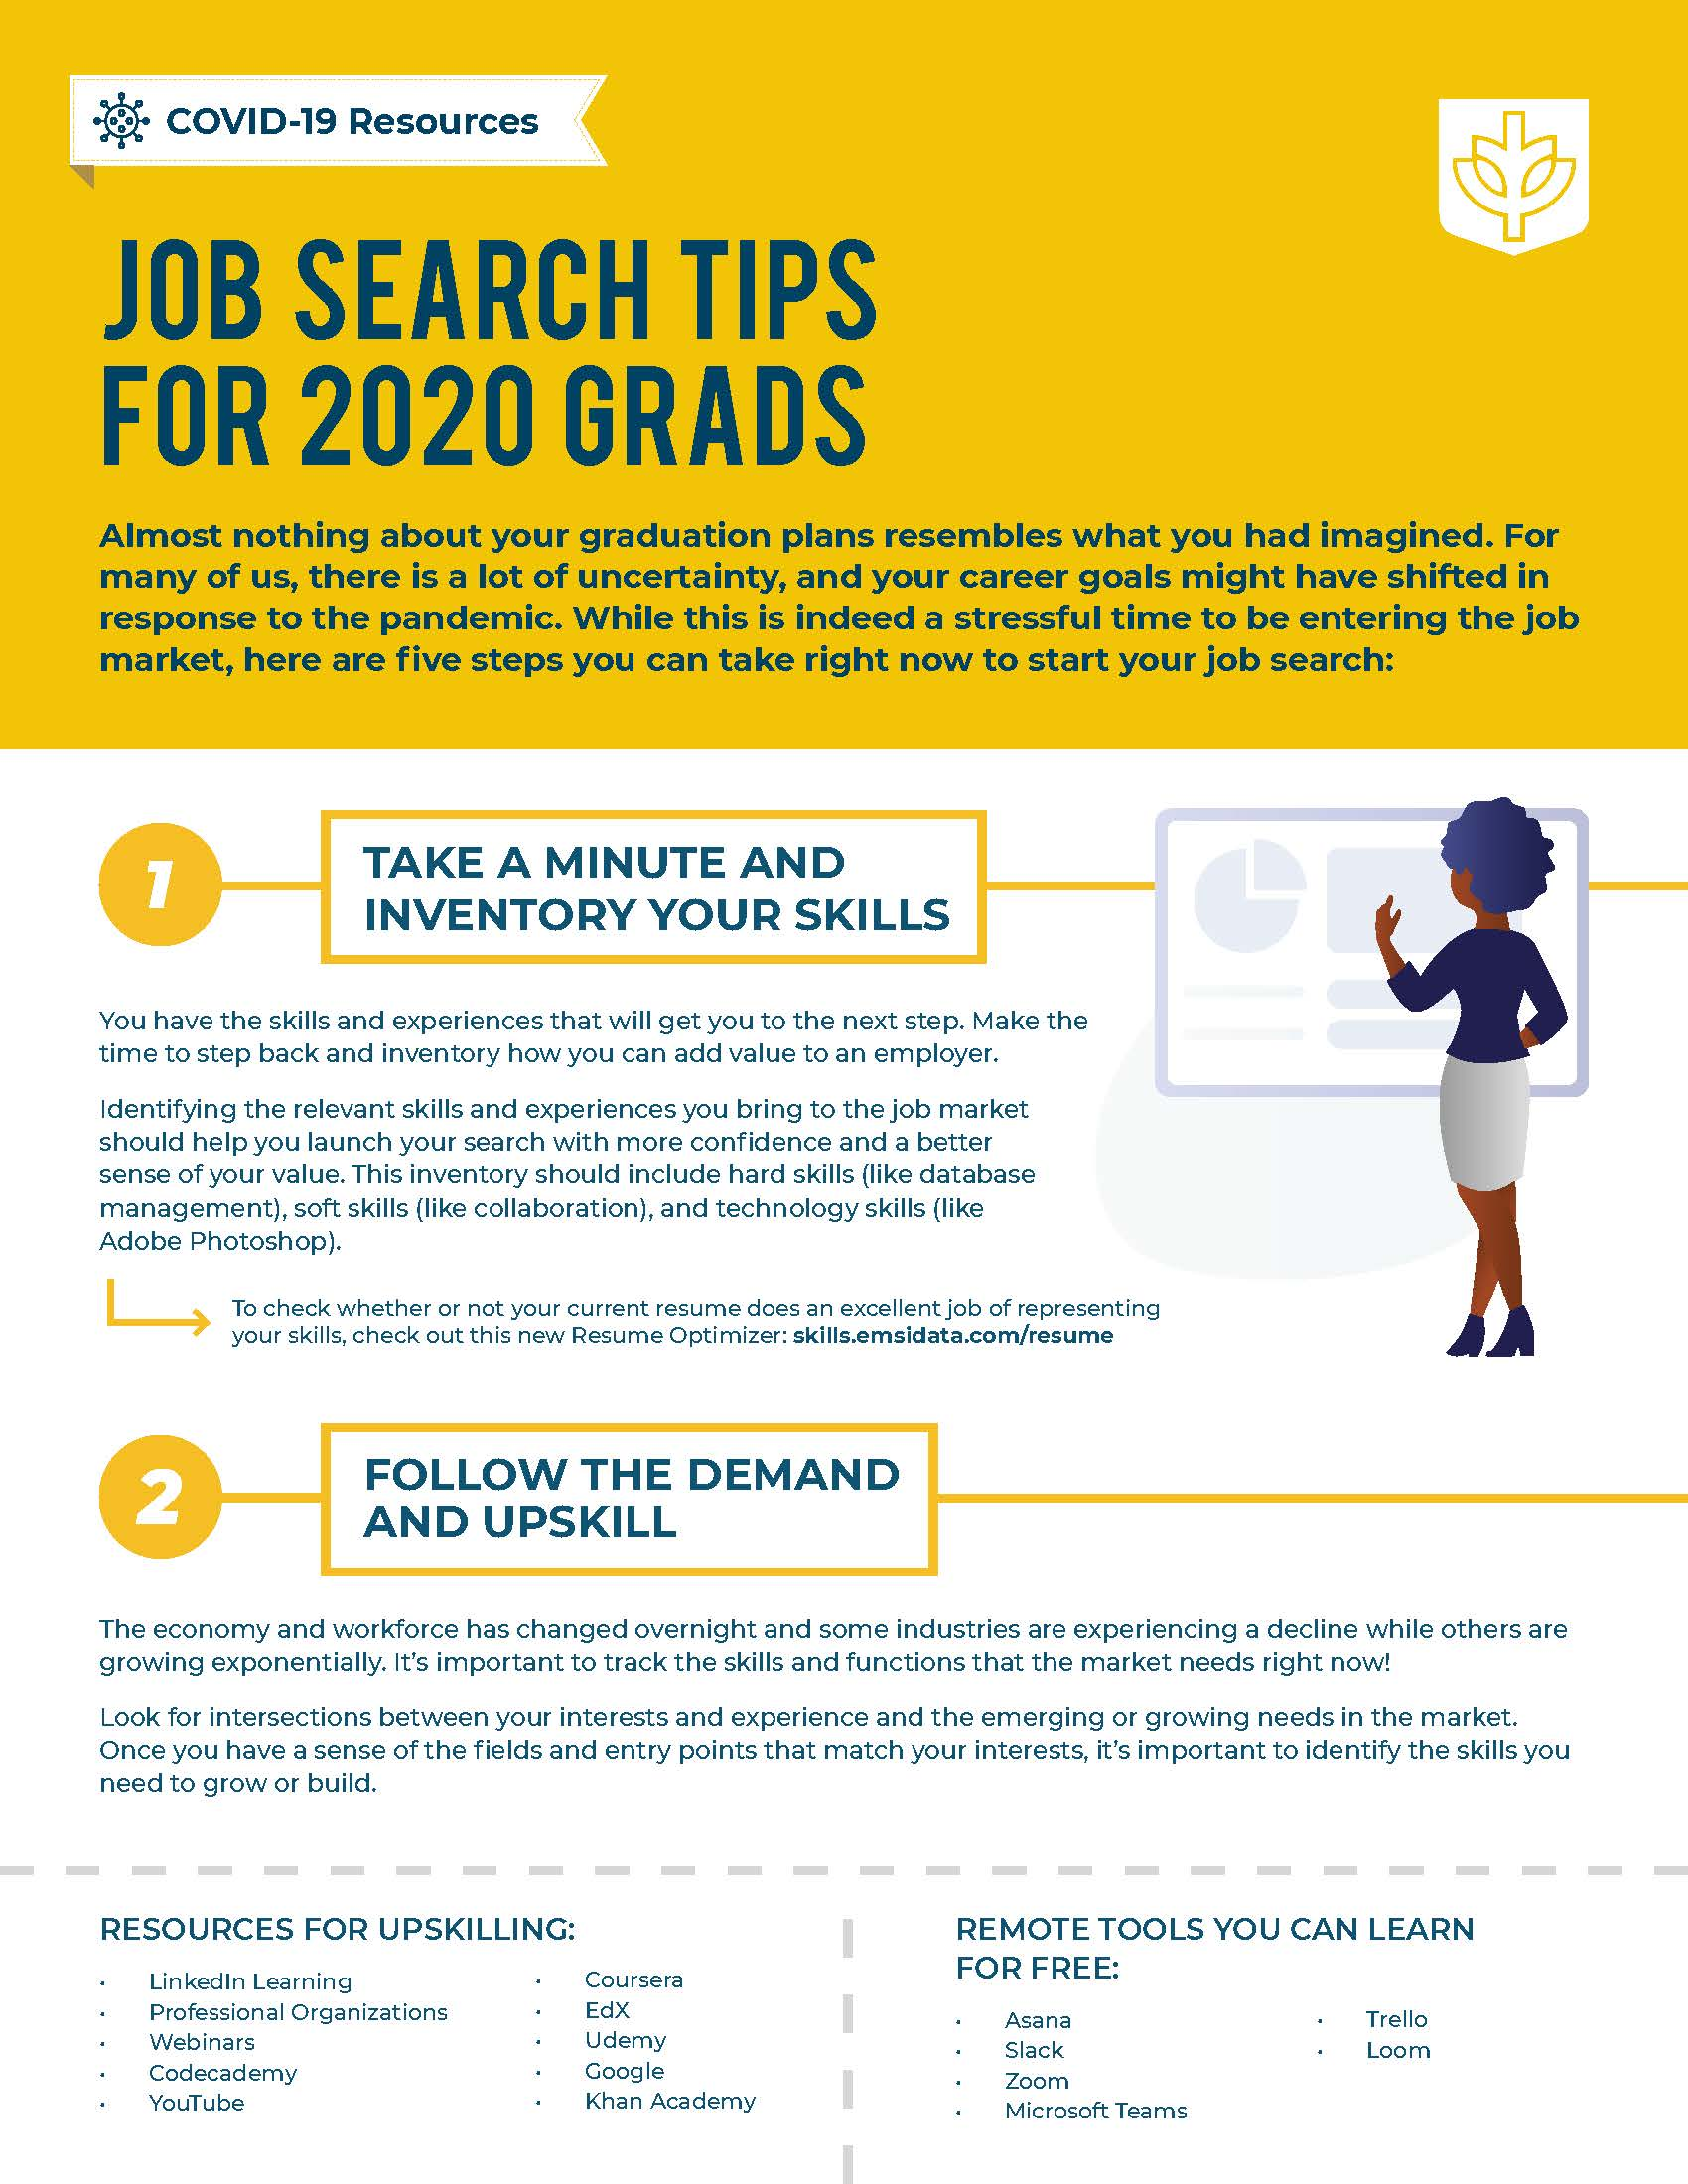 2020 Grad Job Search Tips